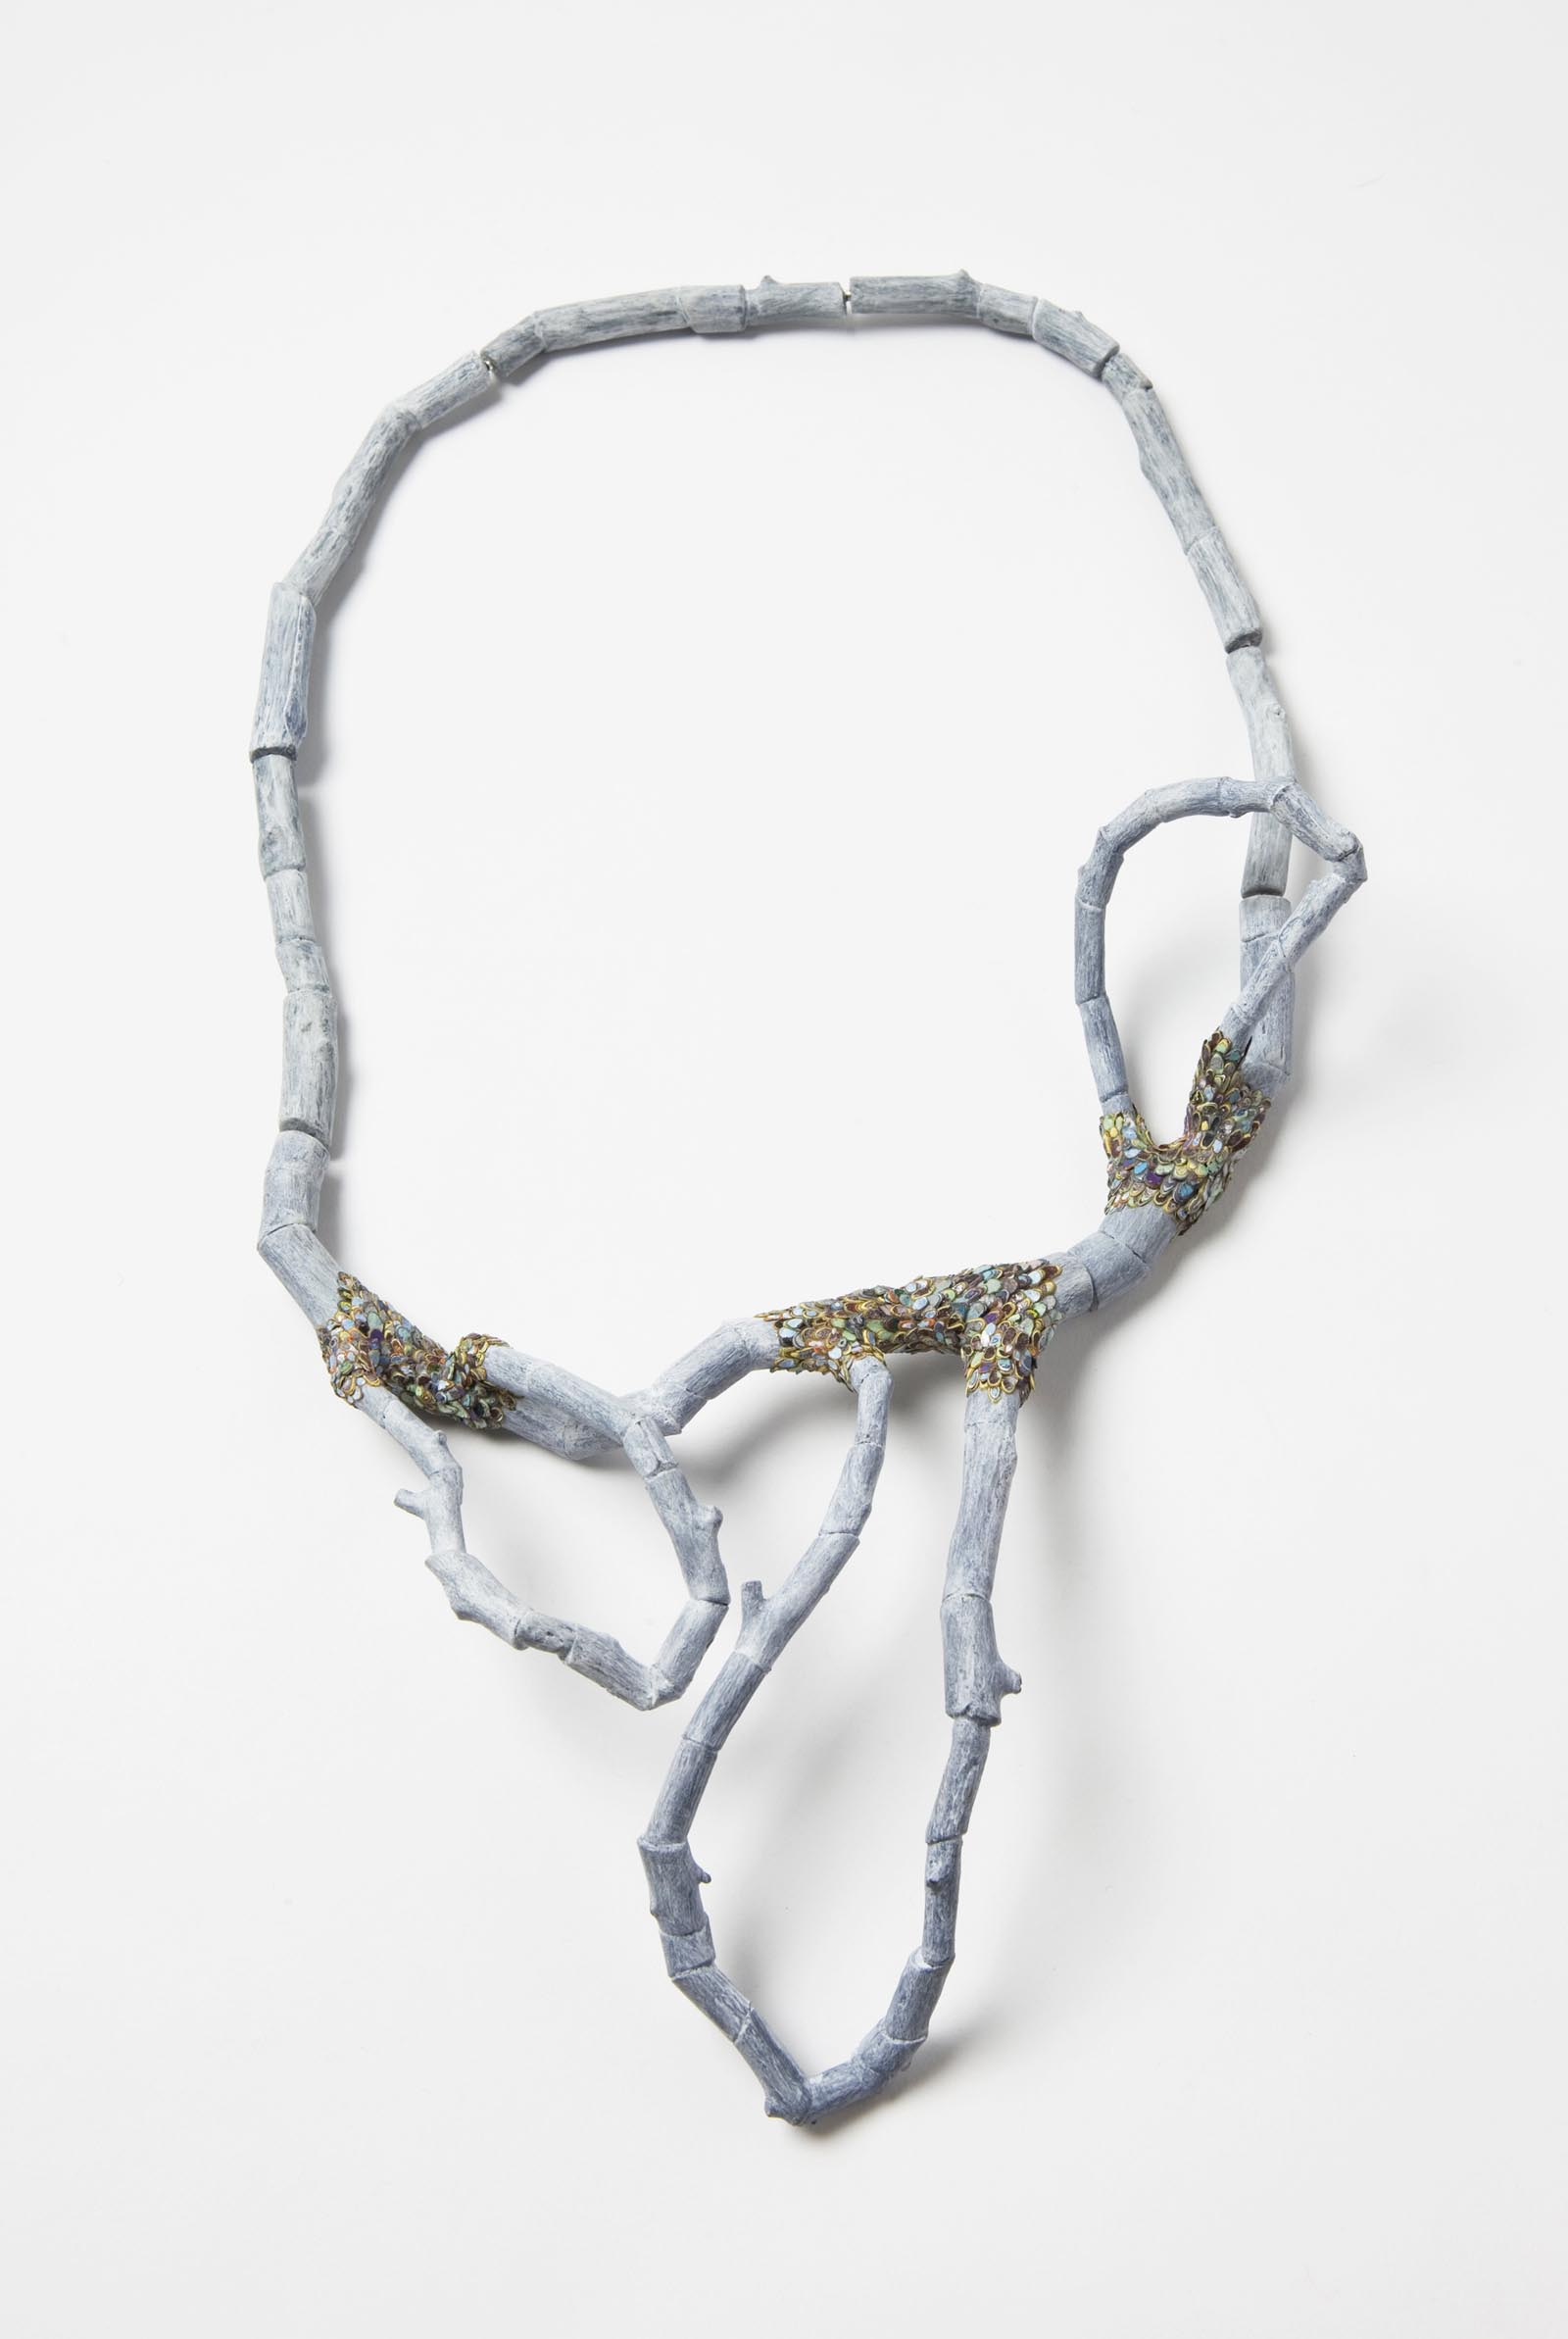 """Confused Branches 1"" I Necklace, 2014 I Wood, graffiti, silver, steel wire, paint I Photo: Mirei Takeuchi"